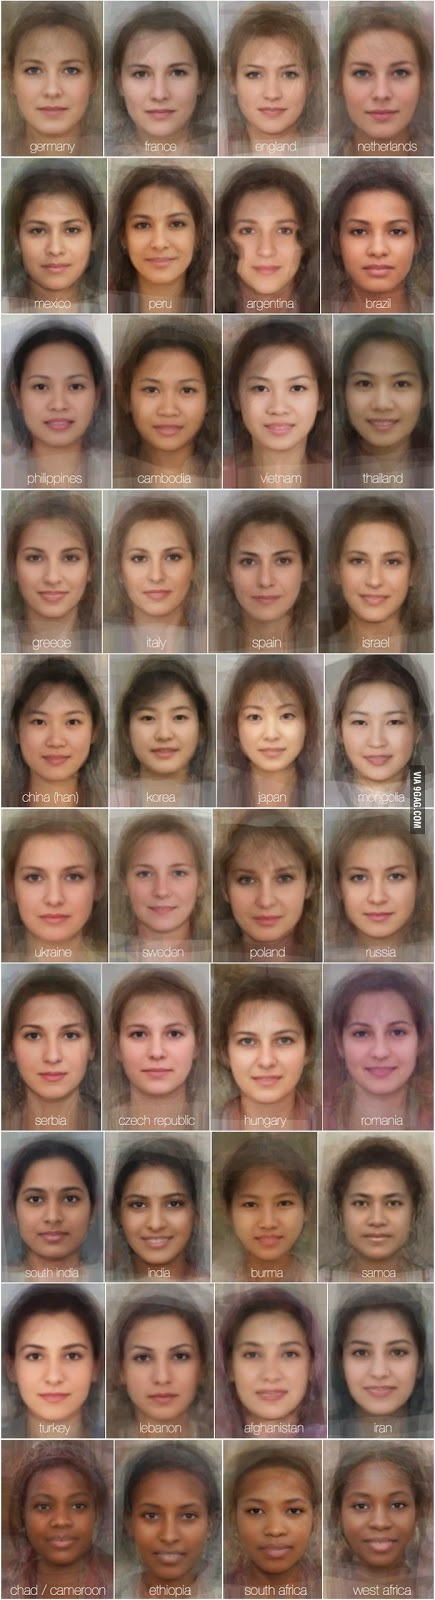 The Average Women Faces from 40 Different Nationalities